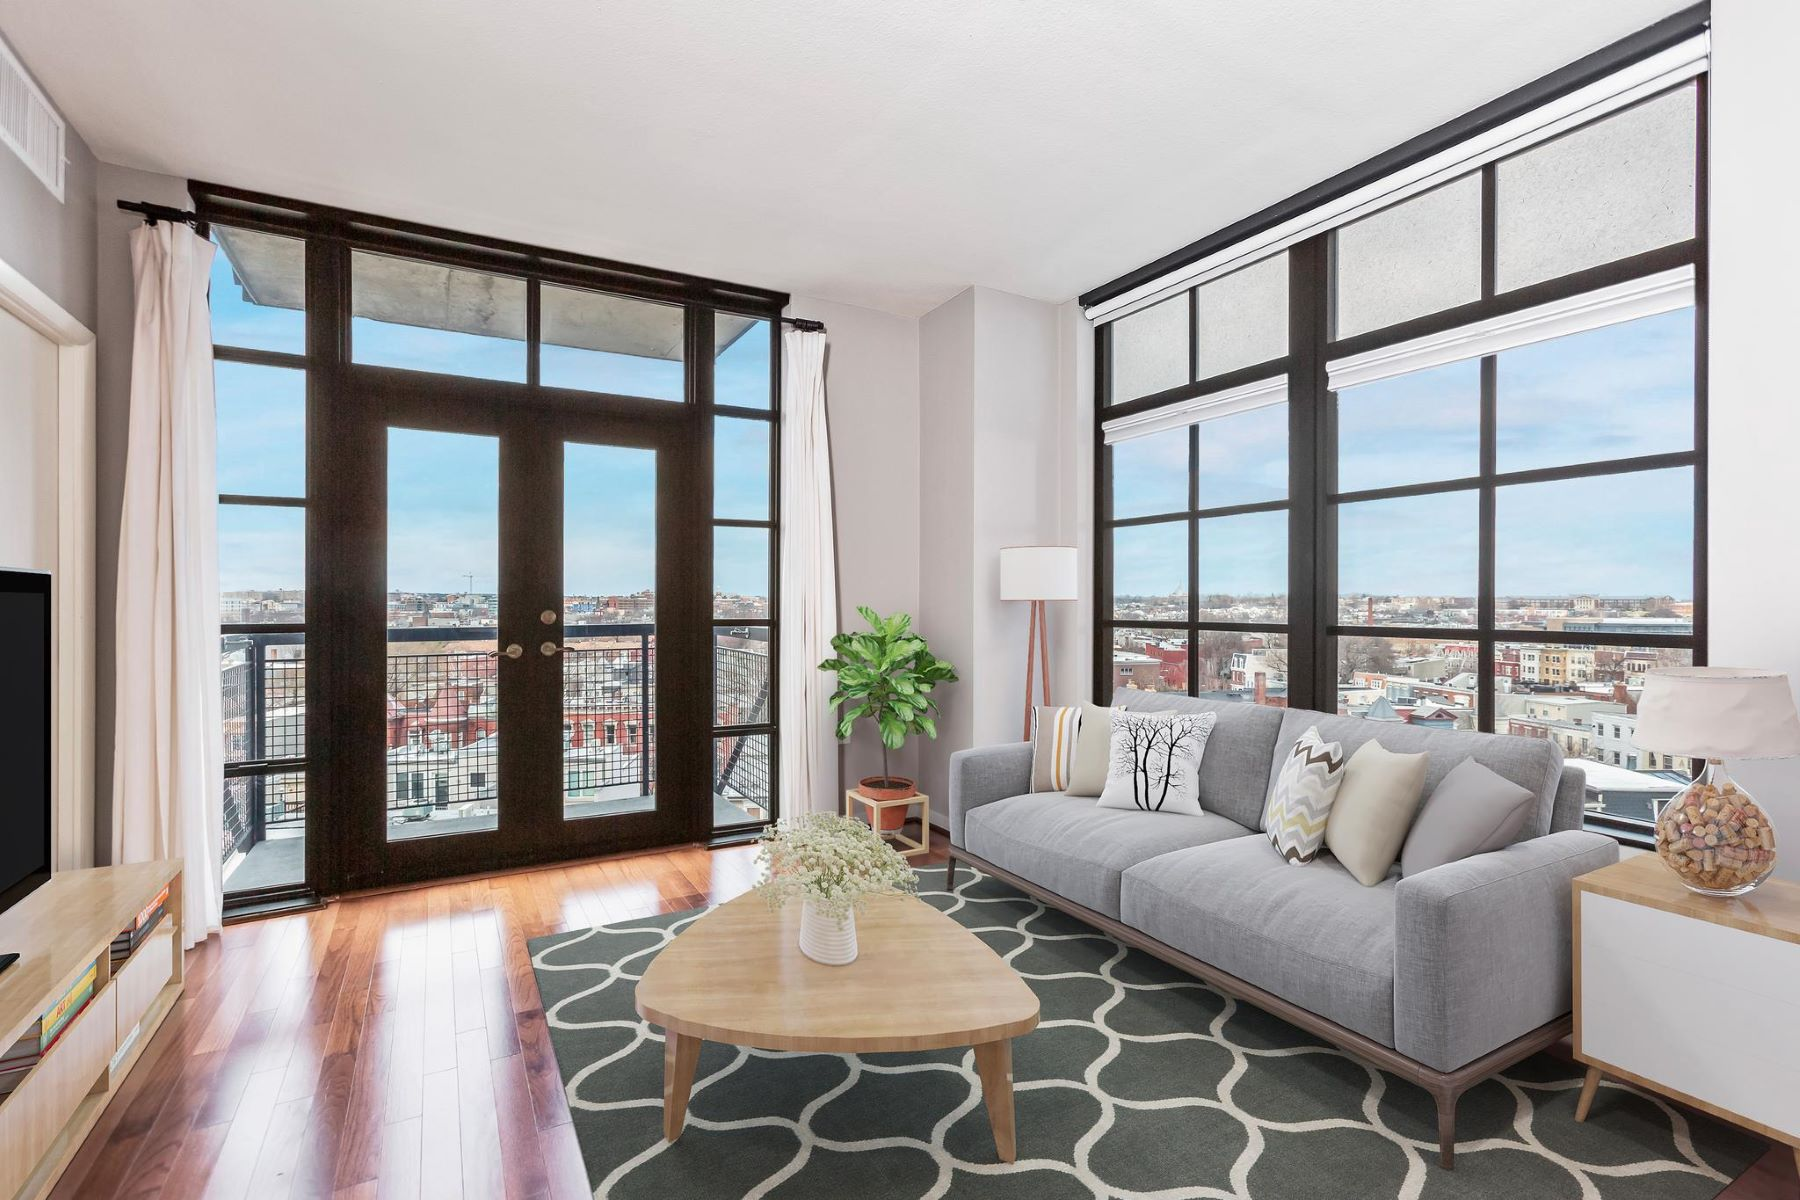 Other Residential for Sale at 437 New York Ave NW #1001 437 New York Ave NW #1001 Washington, District Of Columbia 20001 United States